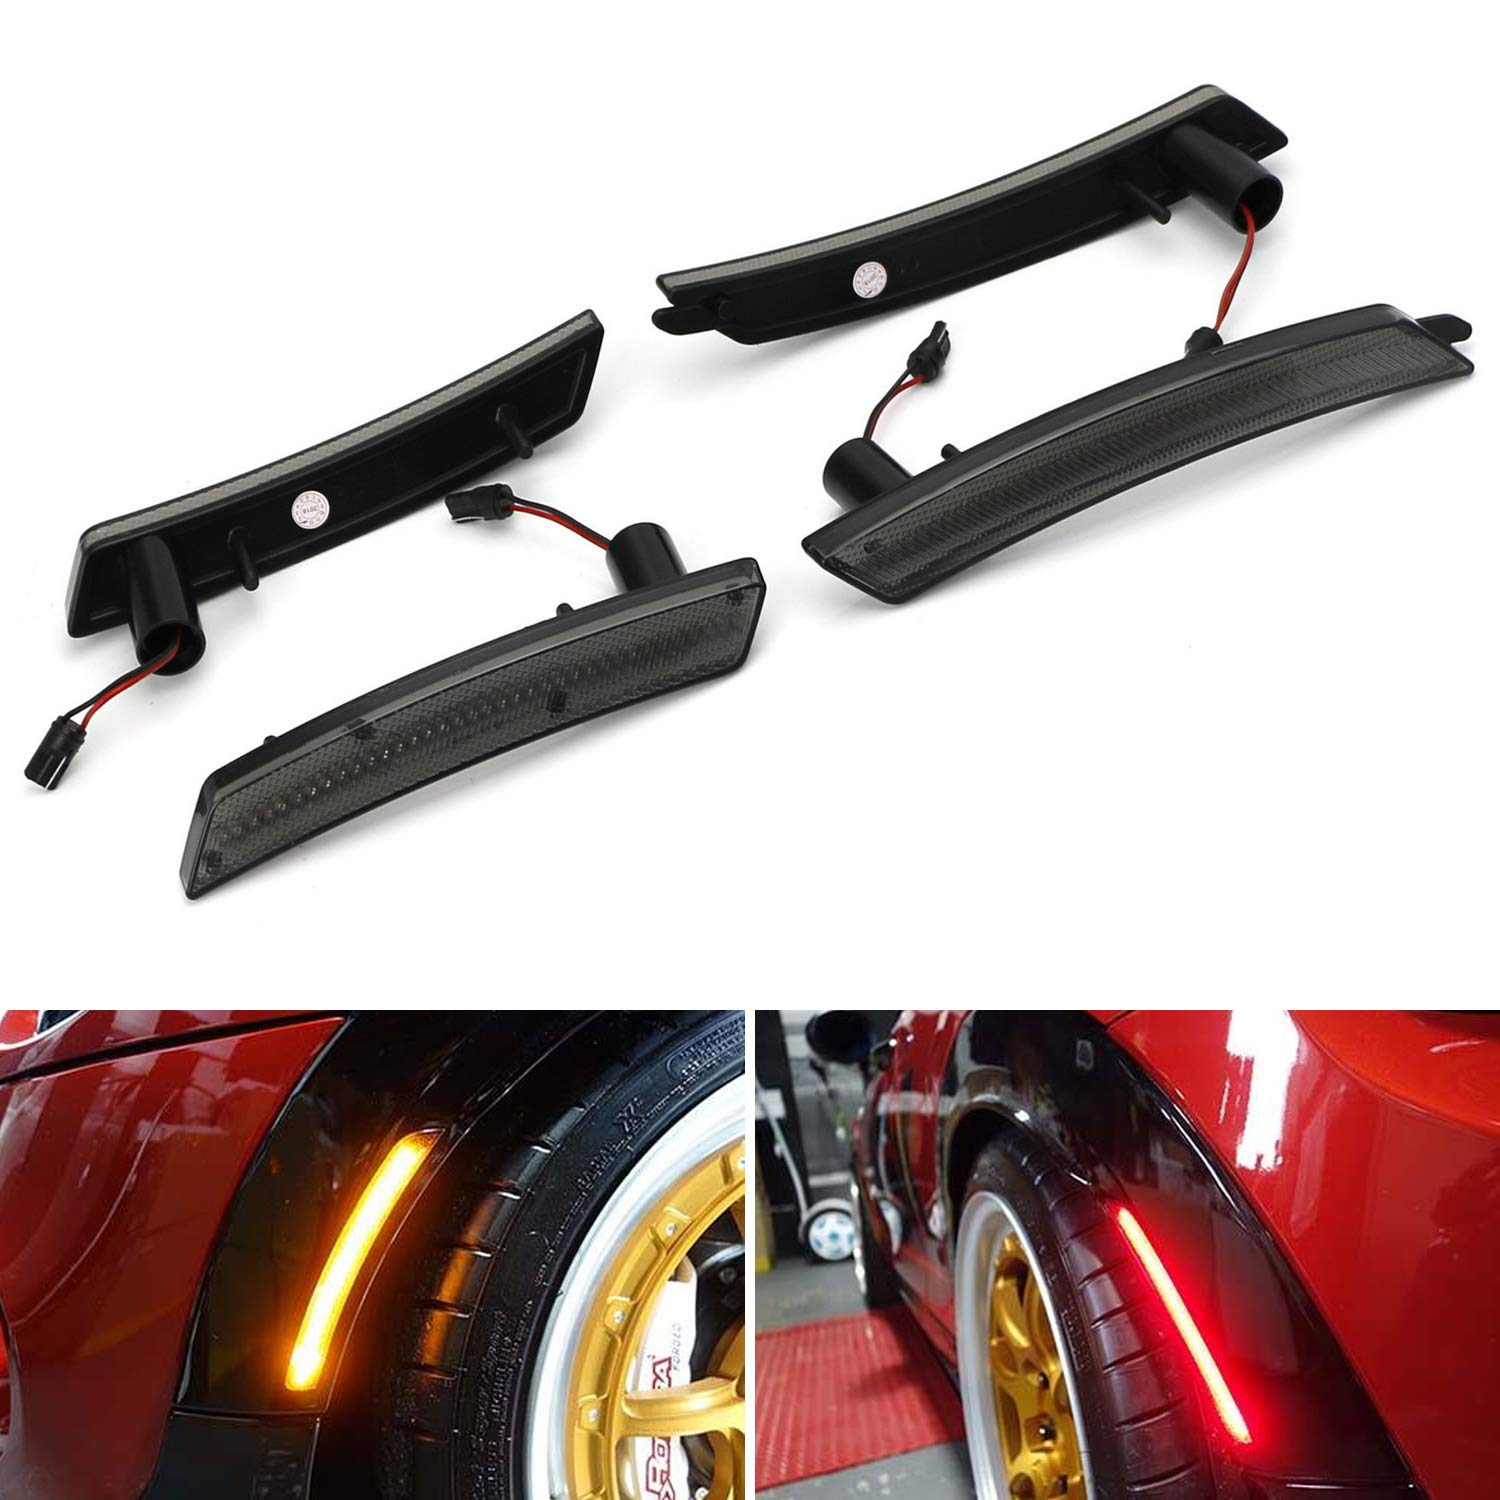 iJDMTOY Smoked Lens Amber/Red Full LED Side Marker Light Kit For 2007-2013/14 MINI Cooper R55 R56 R57 R58 R59 R60 R61, Powered by Total 160-SMD LED, Replace OEM Sidemarker Lamps iJDMTOY Auto Accessories Change Left/Right Original Lamp Assembly